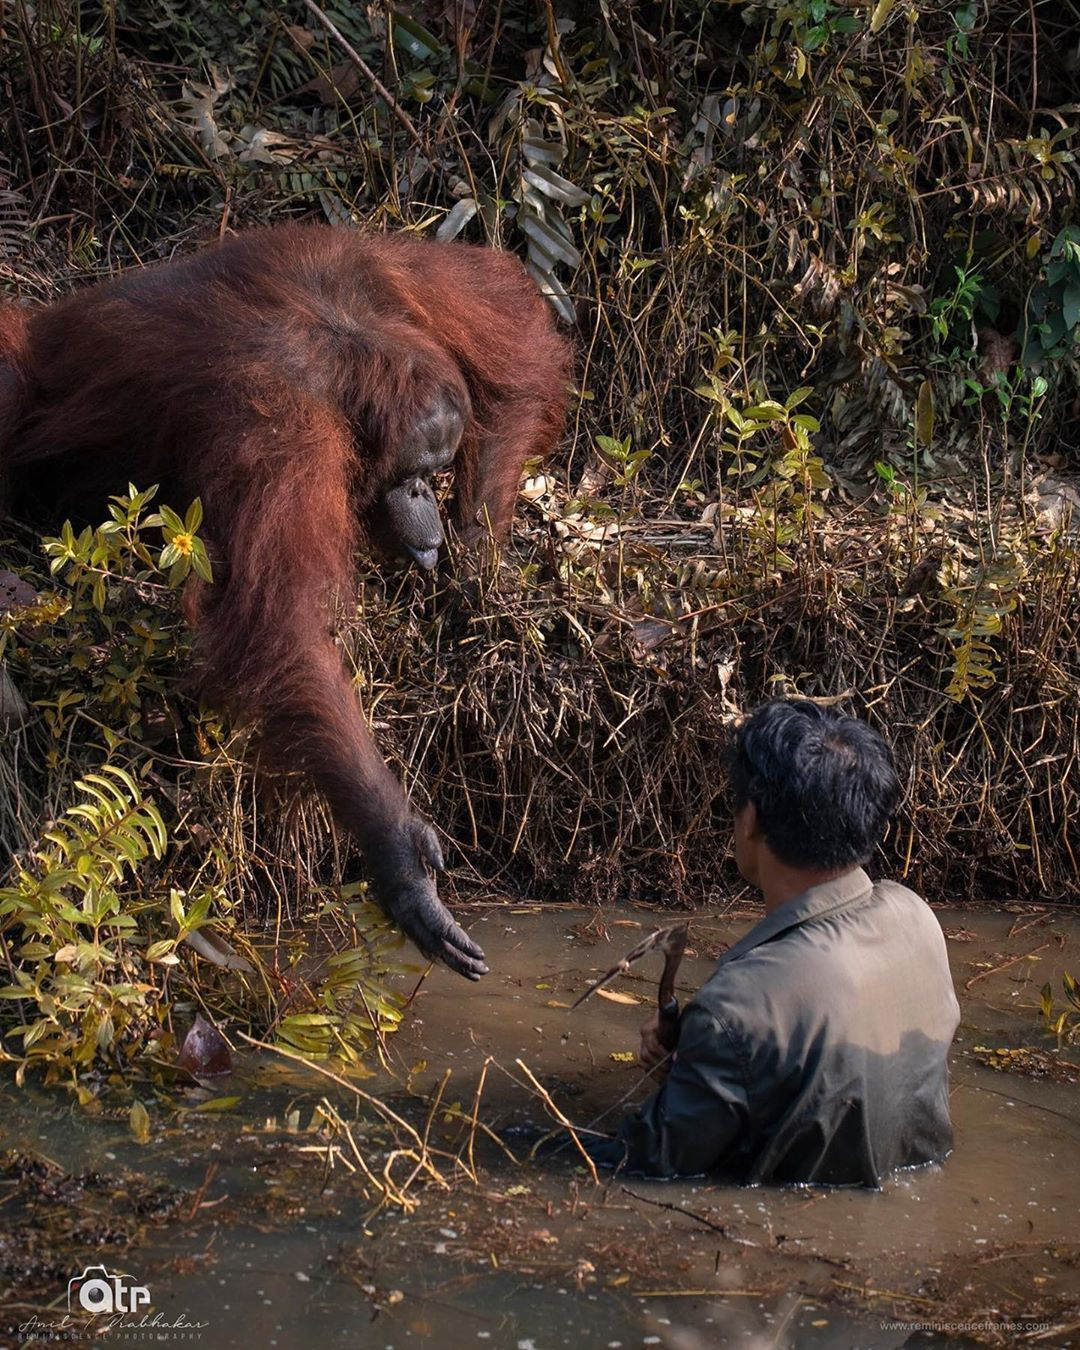 This orangutan saw a man wading in snakeinfested water